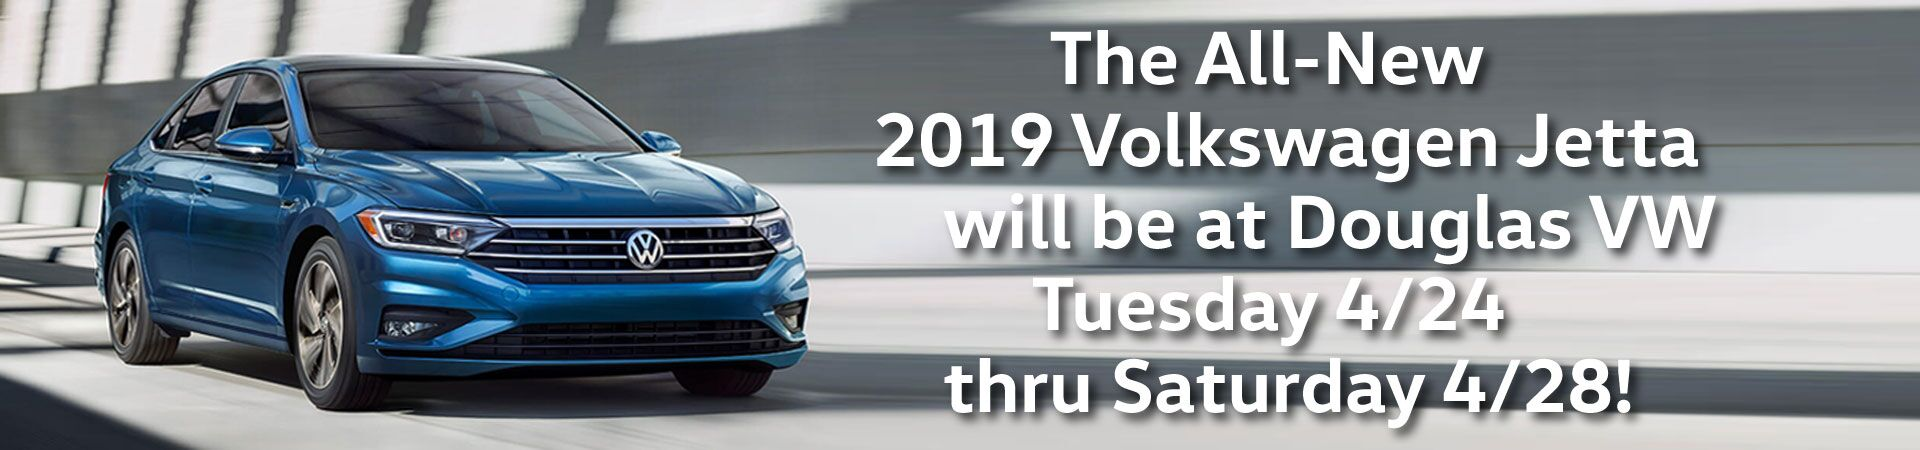 The All-New 2019 Jetta will be at Douglas VW 4/28